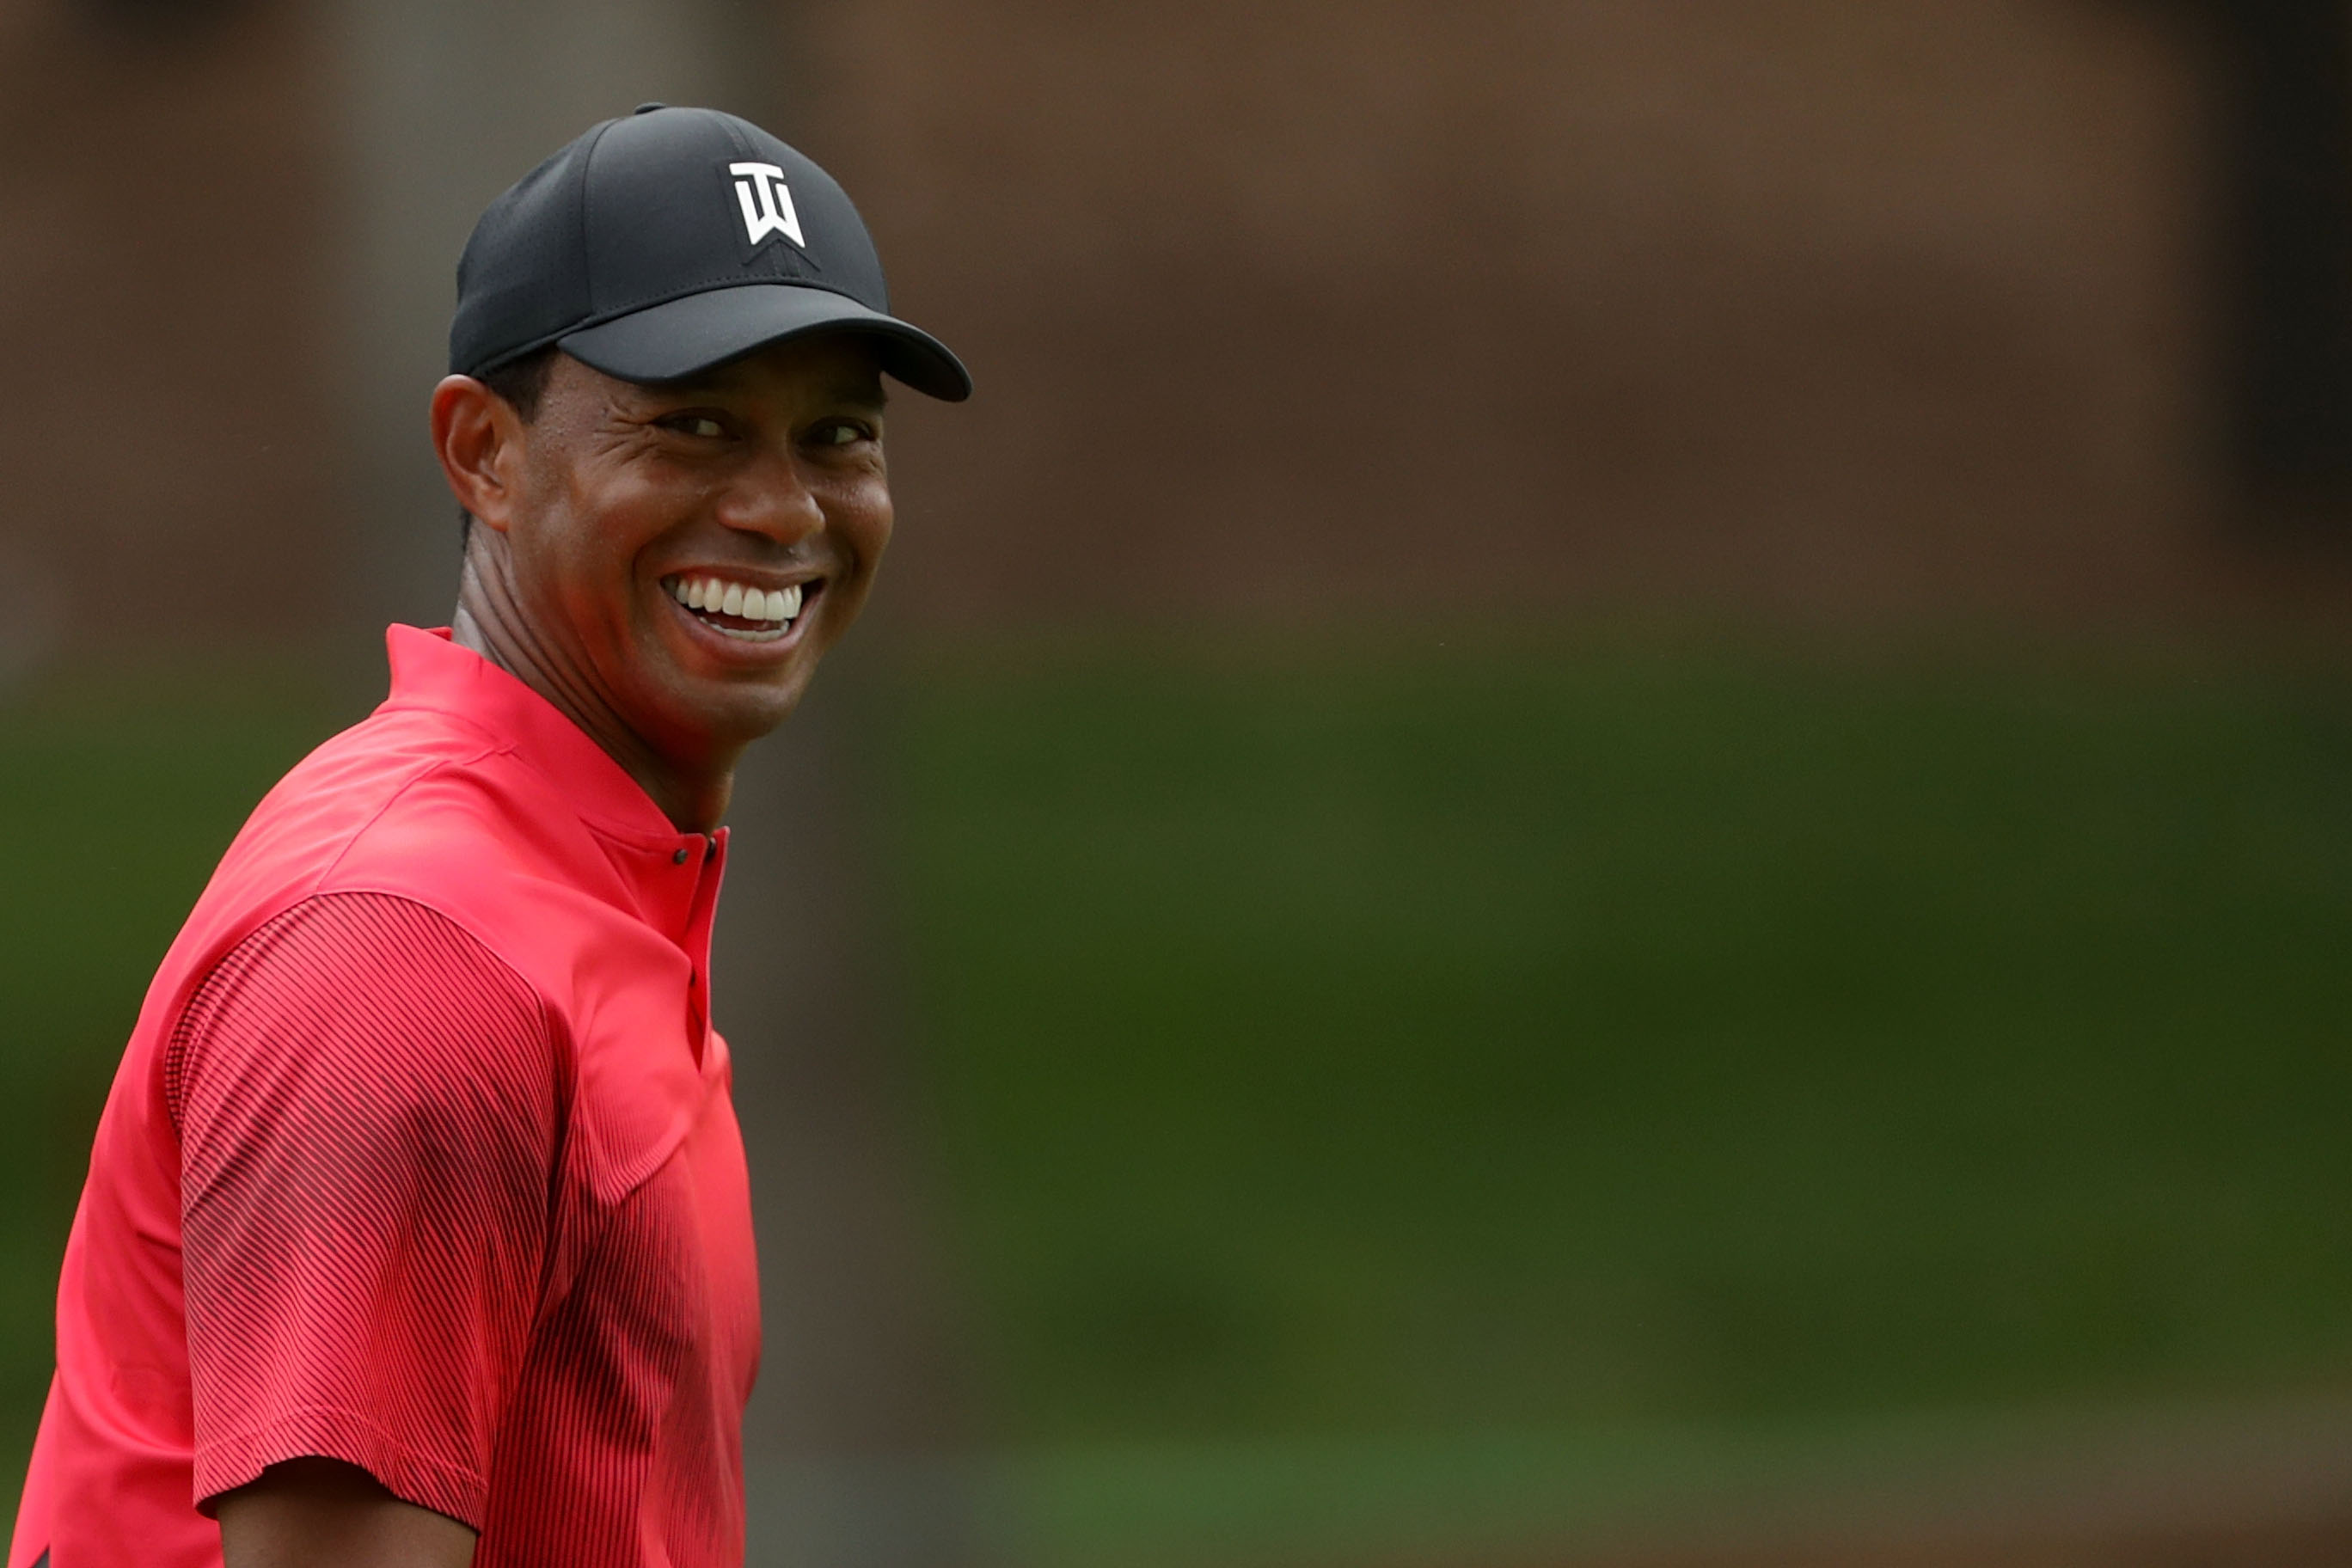 At TPC Sawgrass, Tiger Woods hits prettiest draw you'll ever see